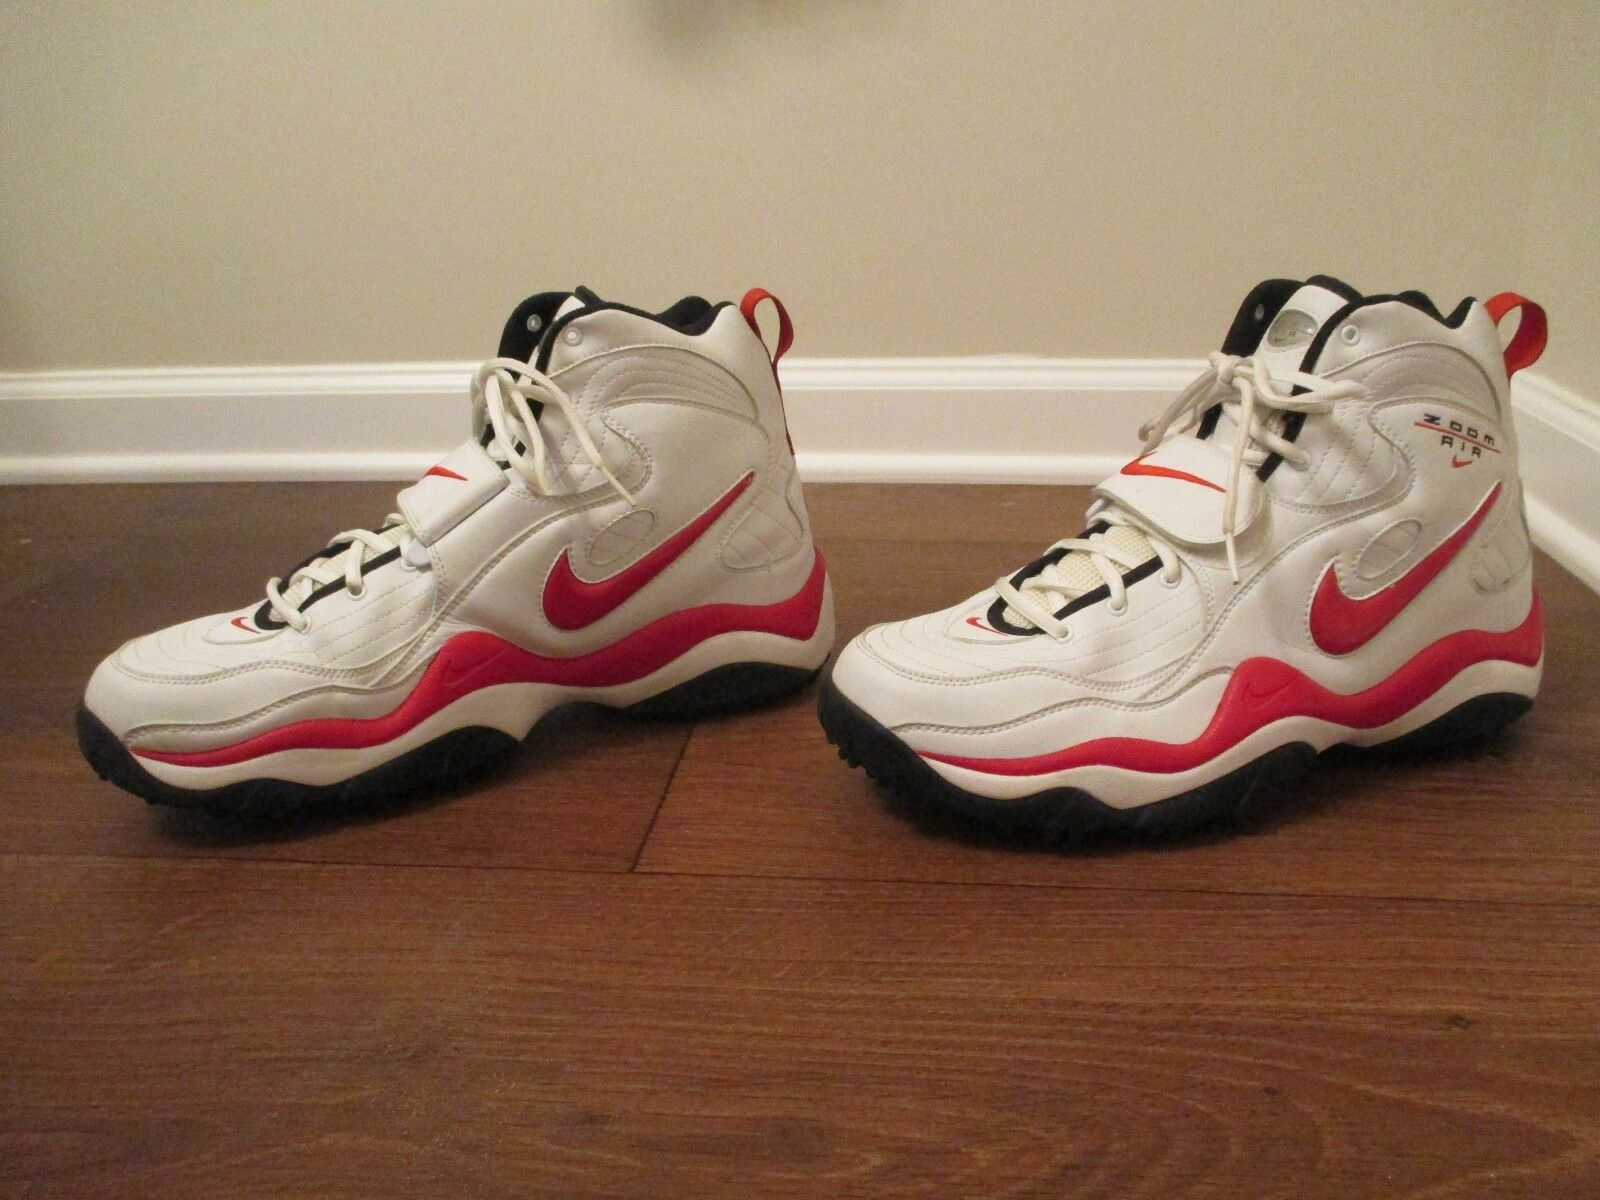 Classic 1999 Used Worn Sz 14 Nike Zoom Air Turf Trainer shoes White, Black, Red